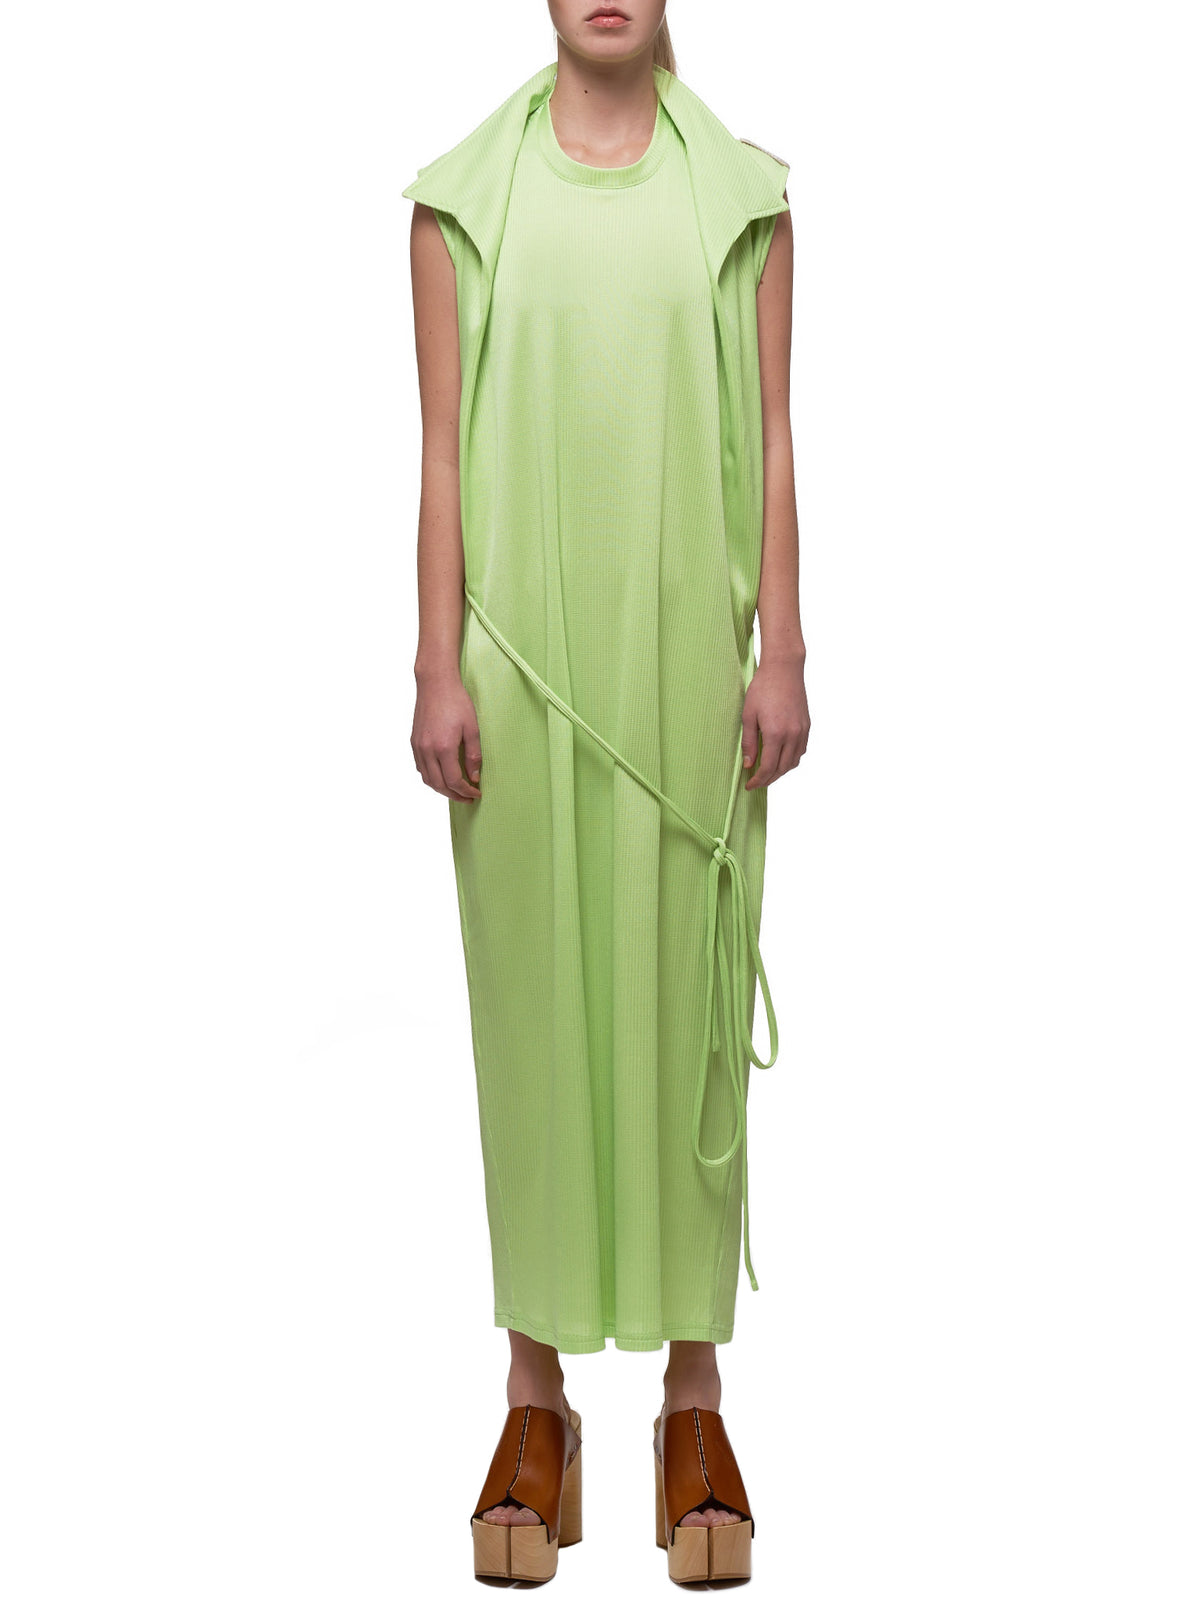 Trench Dress (WDRESS75-S18-F125-LIGHT-GREEN)